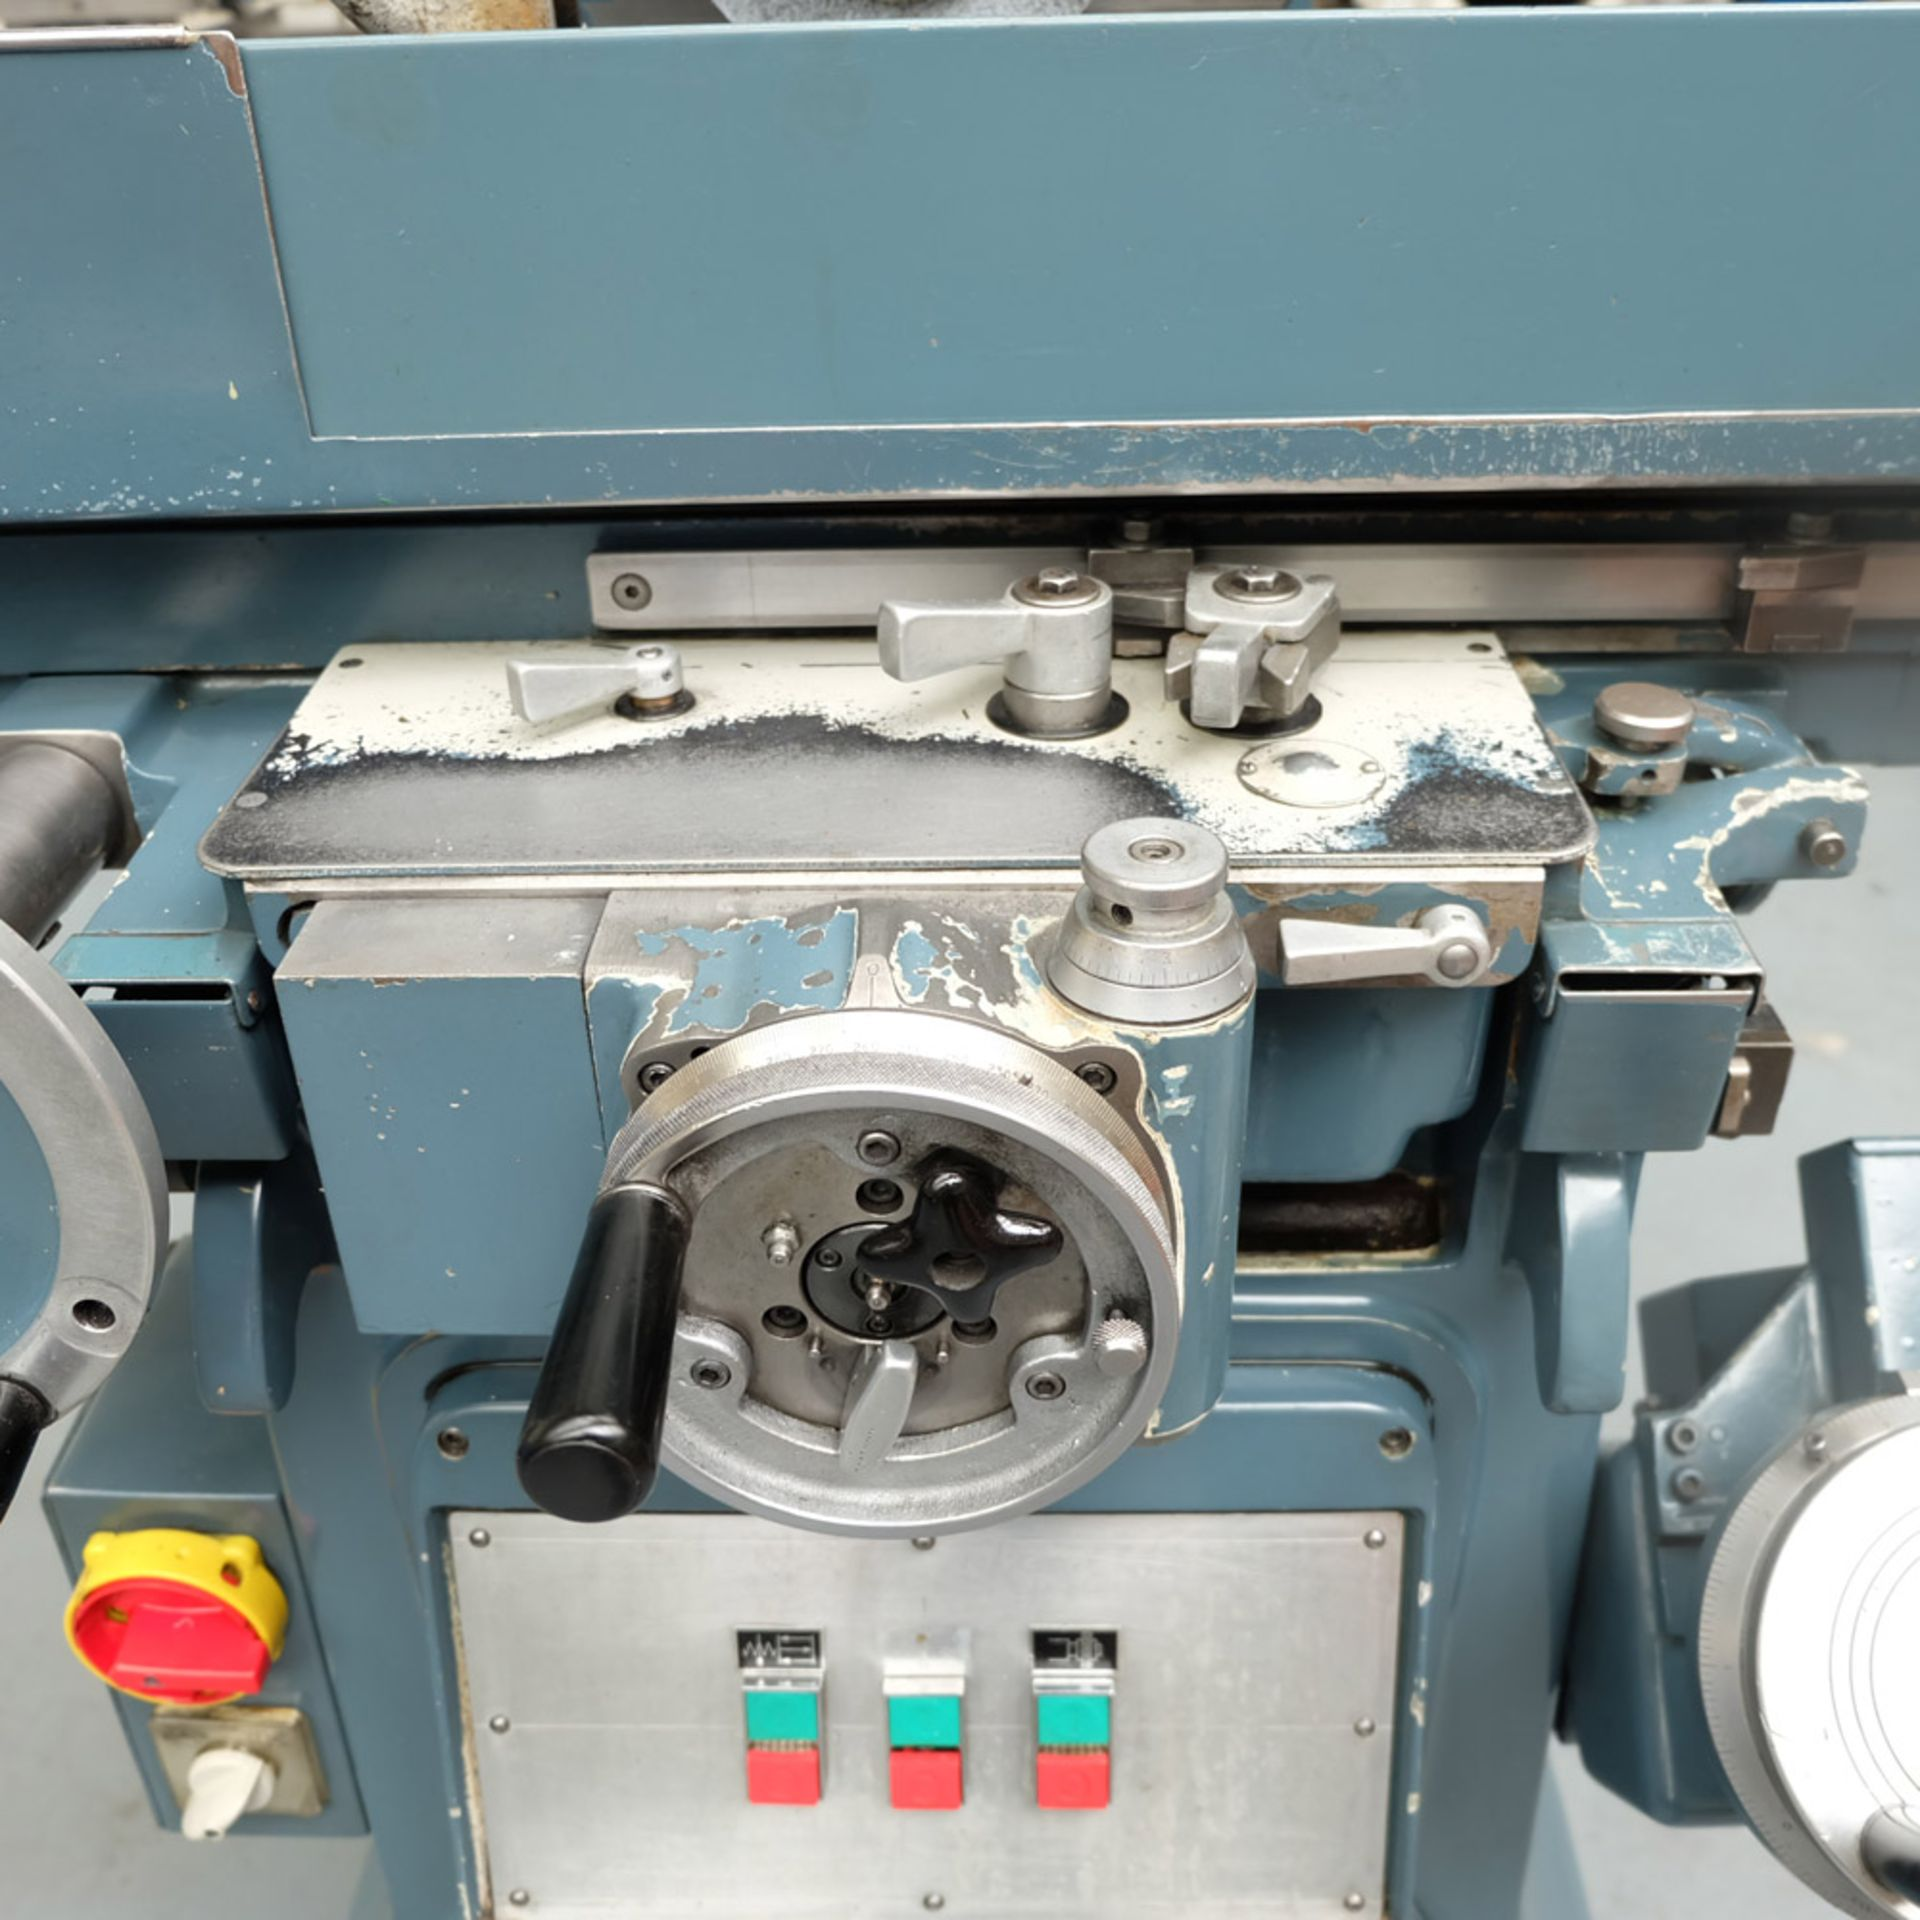 "Jones & Shipman Type 540P Tool Room Surface Grinder. Capacity 18"" x 6"". Imperial Dials. - Image 4 of 7"